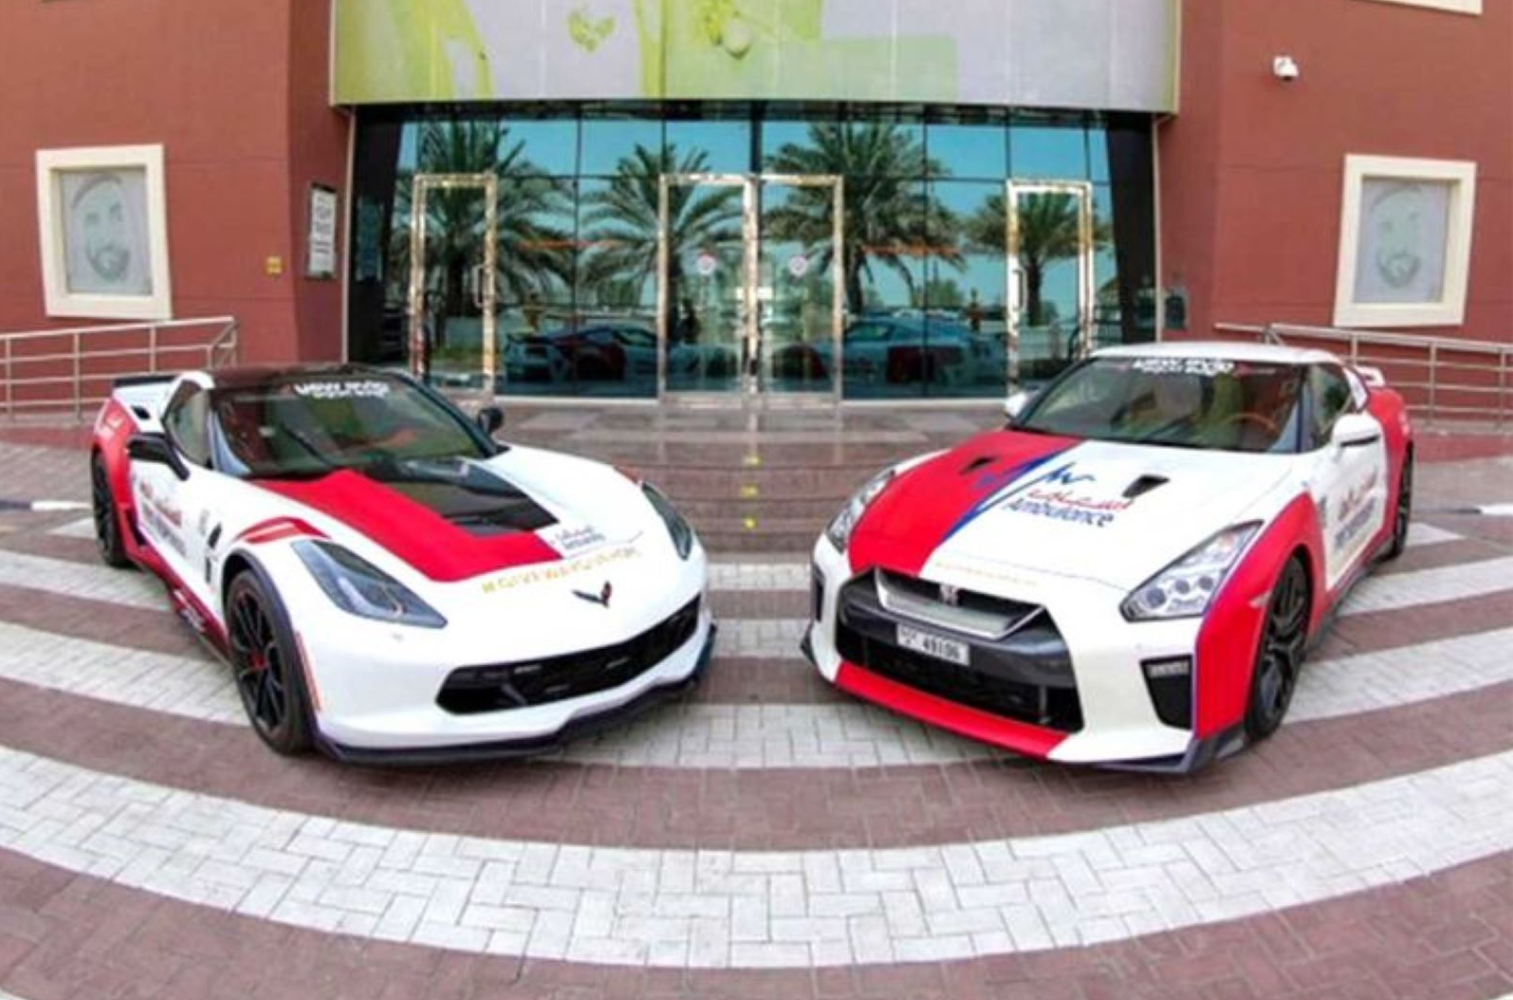 Khalifa bin Drai, CEO of the Dubai Corporation for Ambulance Services (DCAS), has commissioned three new ambulance cars – a Range Rover, a C7 Chevy Corvette, and a Nissan GT-R.